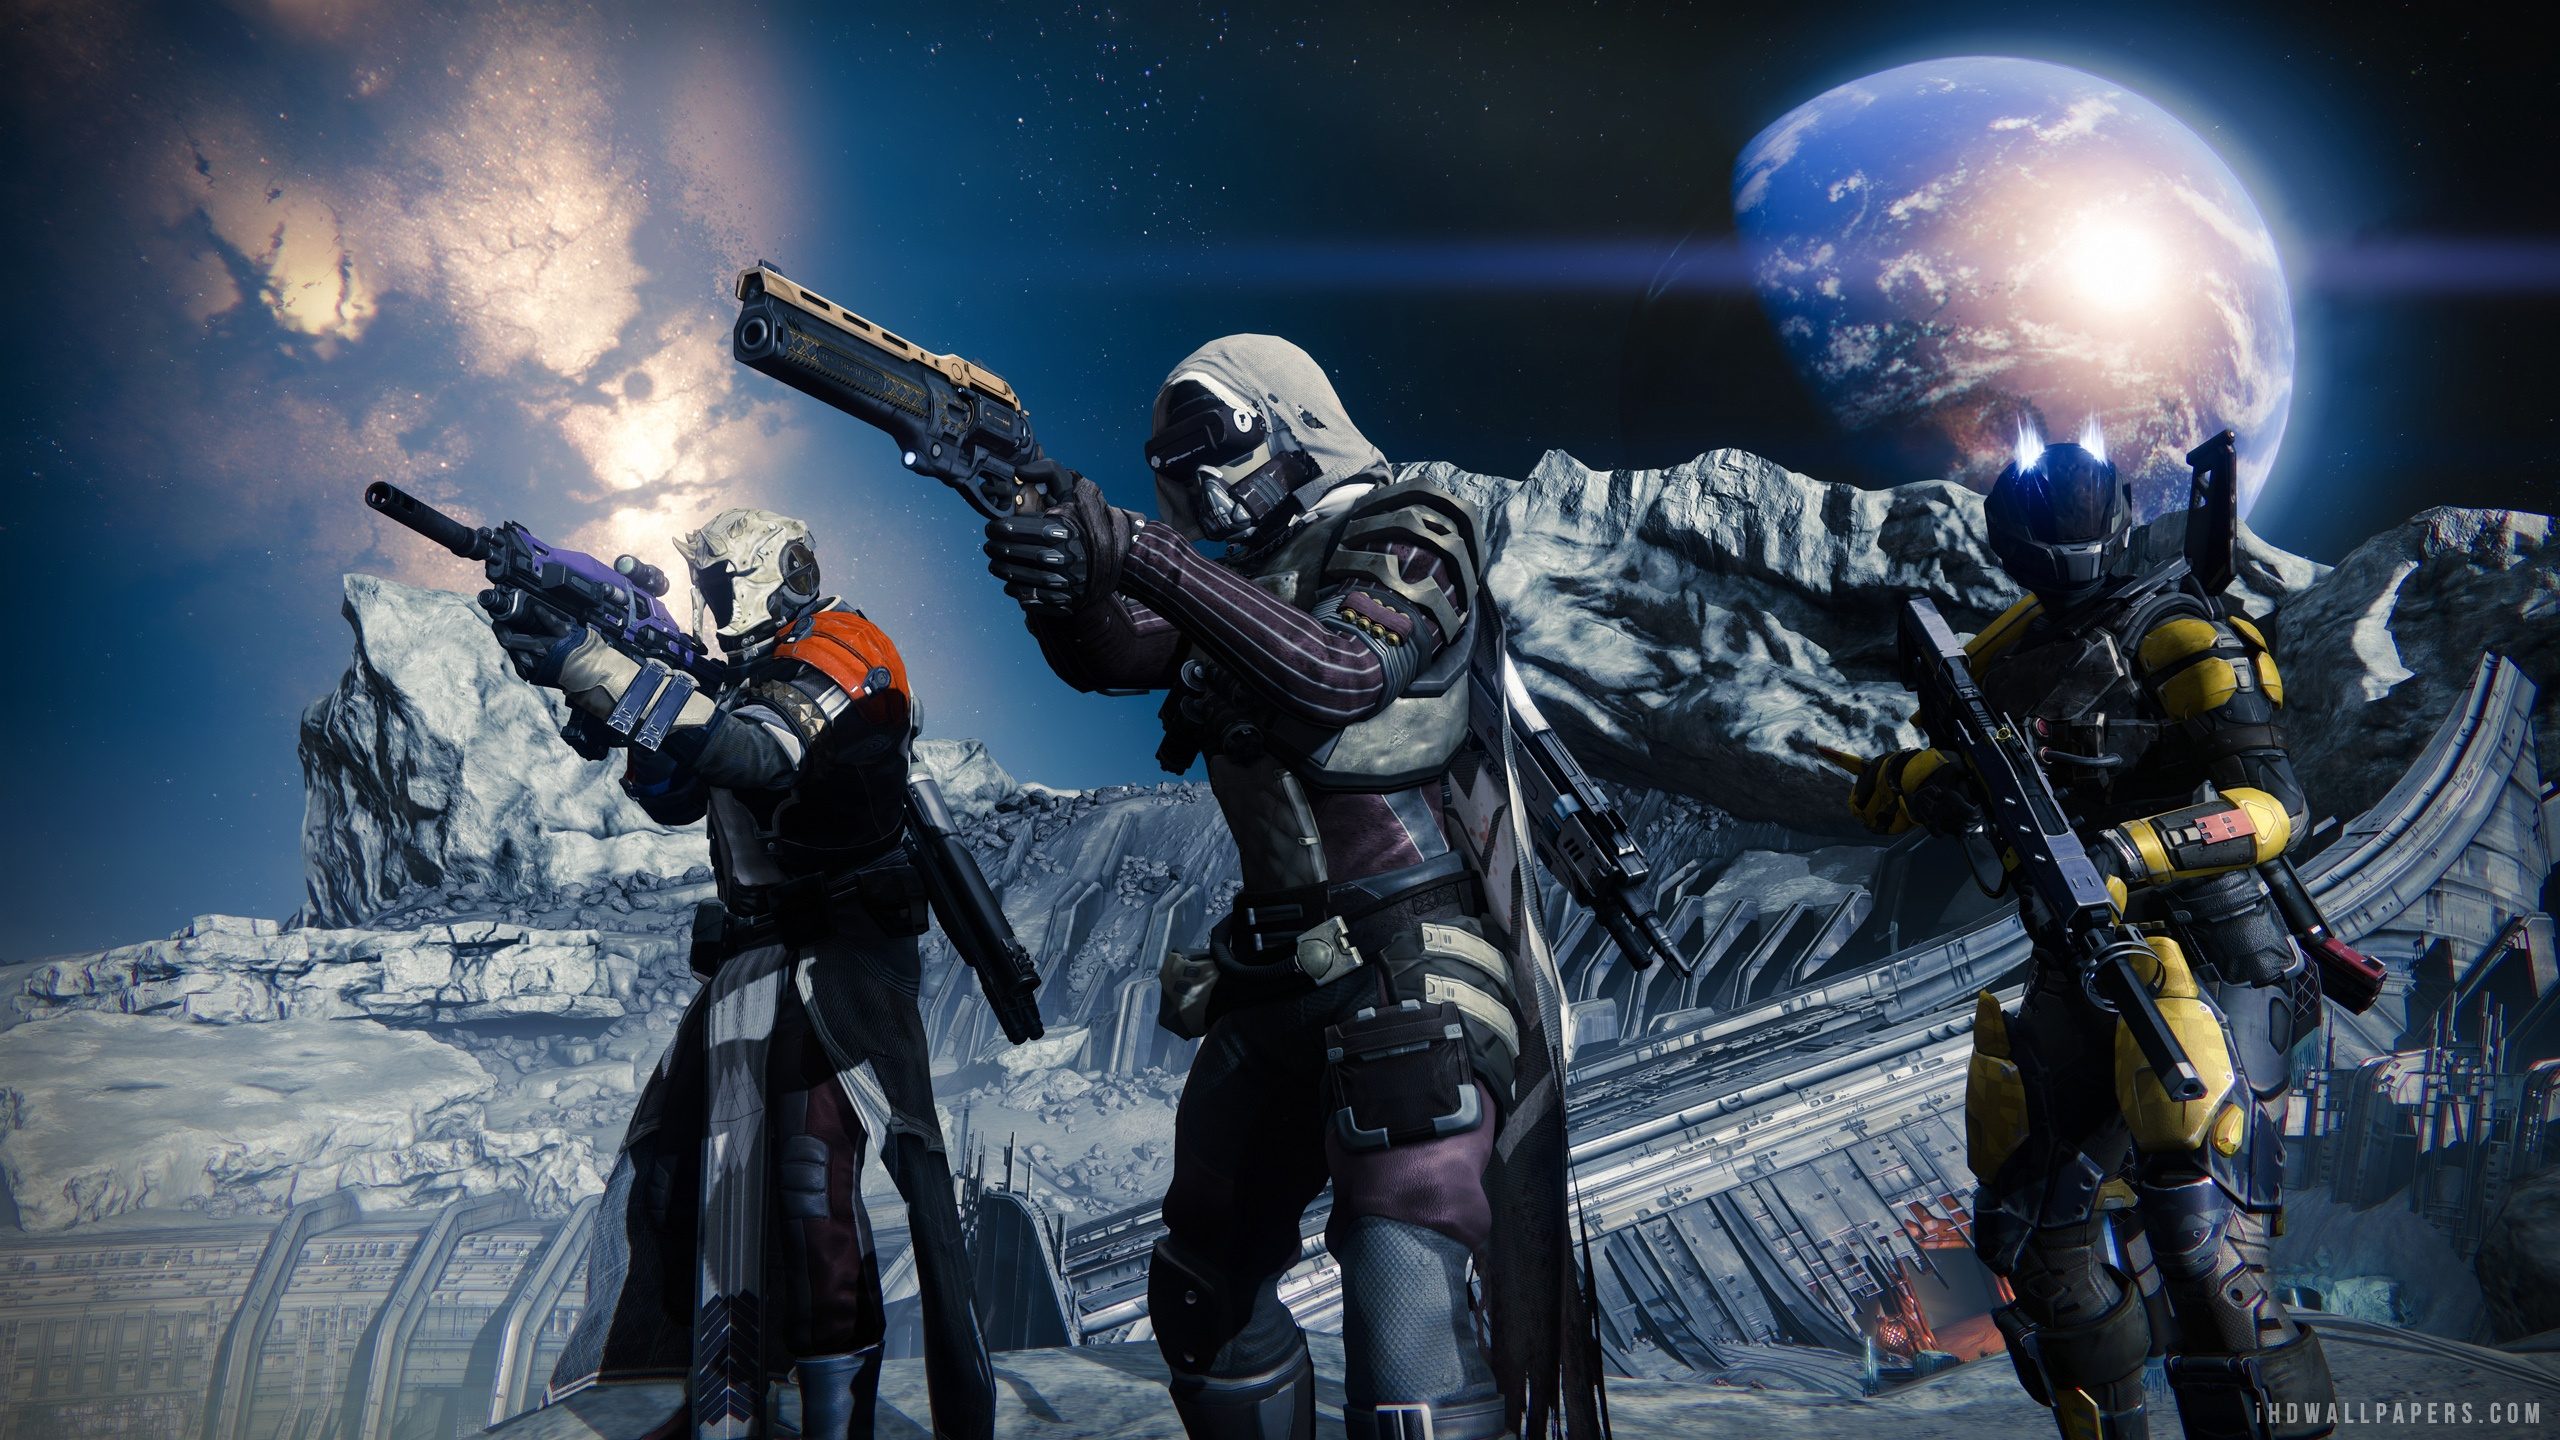 Destiny Bungie Hd wallpaper   1221016 2560x1440